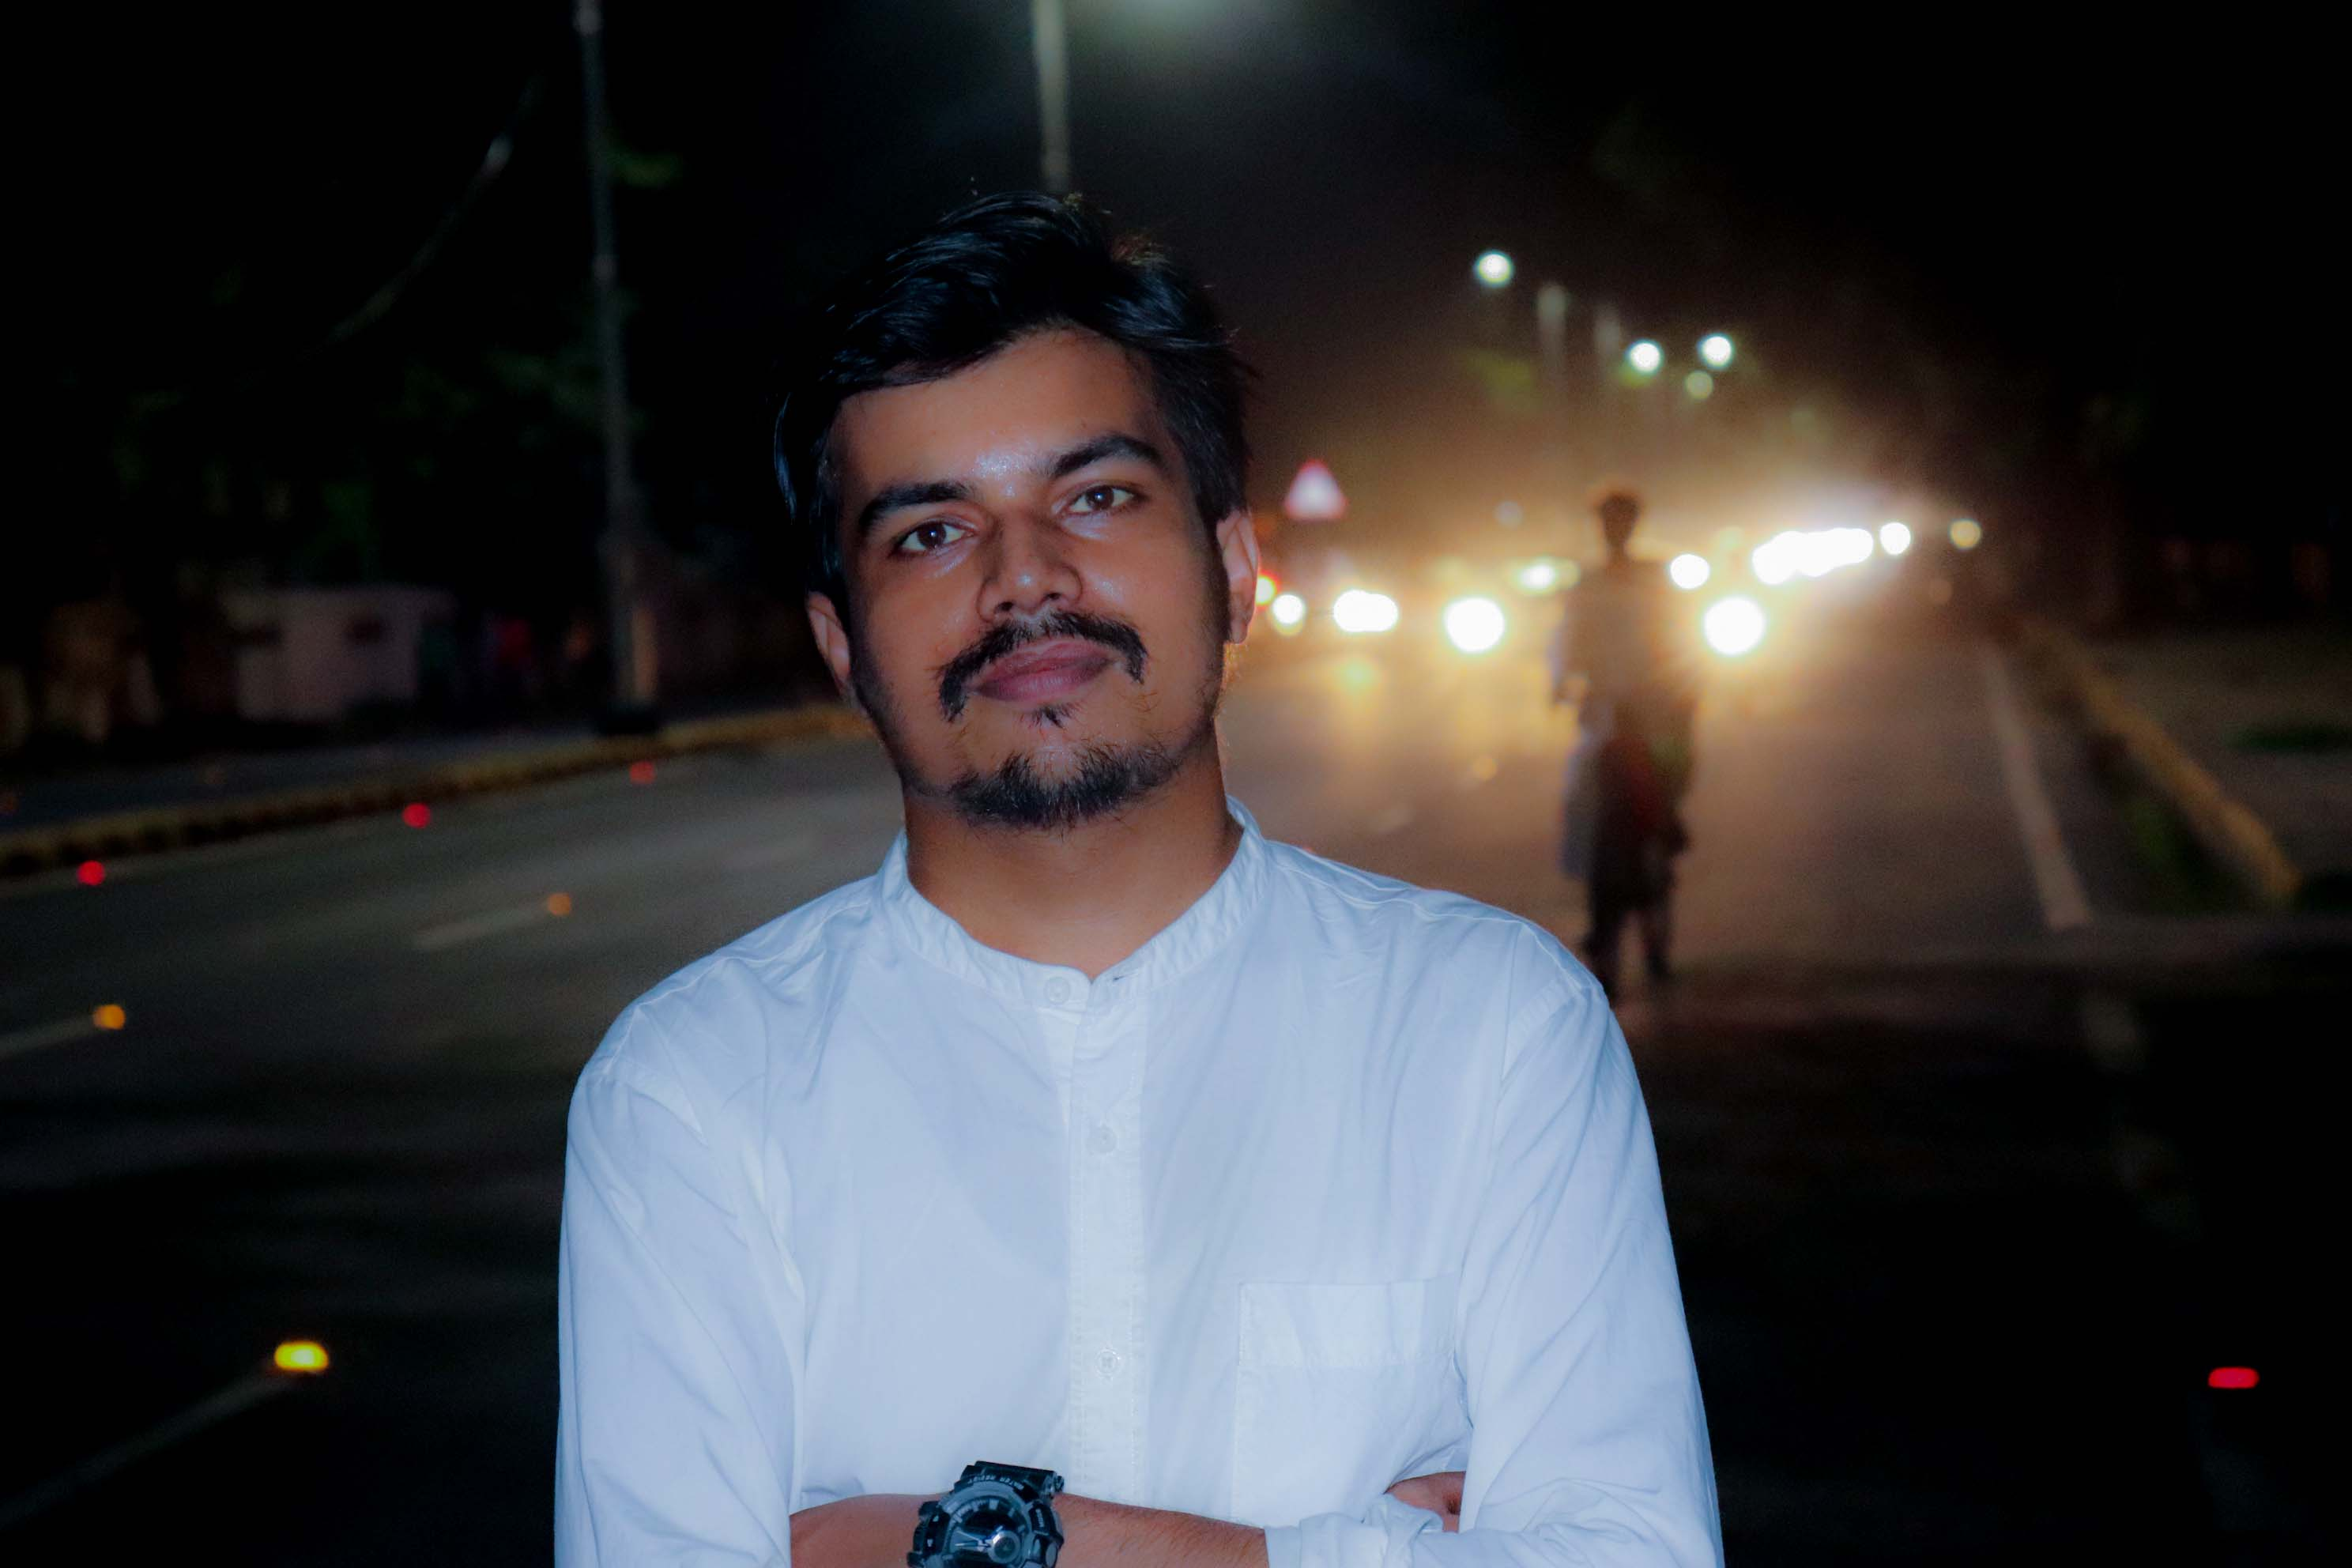 Ranjan Mistry, Youngest Social Entrepreneur from Bihar & Think Tank of Bihar who drafted and Proposed the proposal of Patna University Incubation Hub